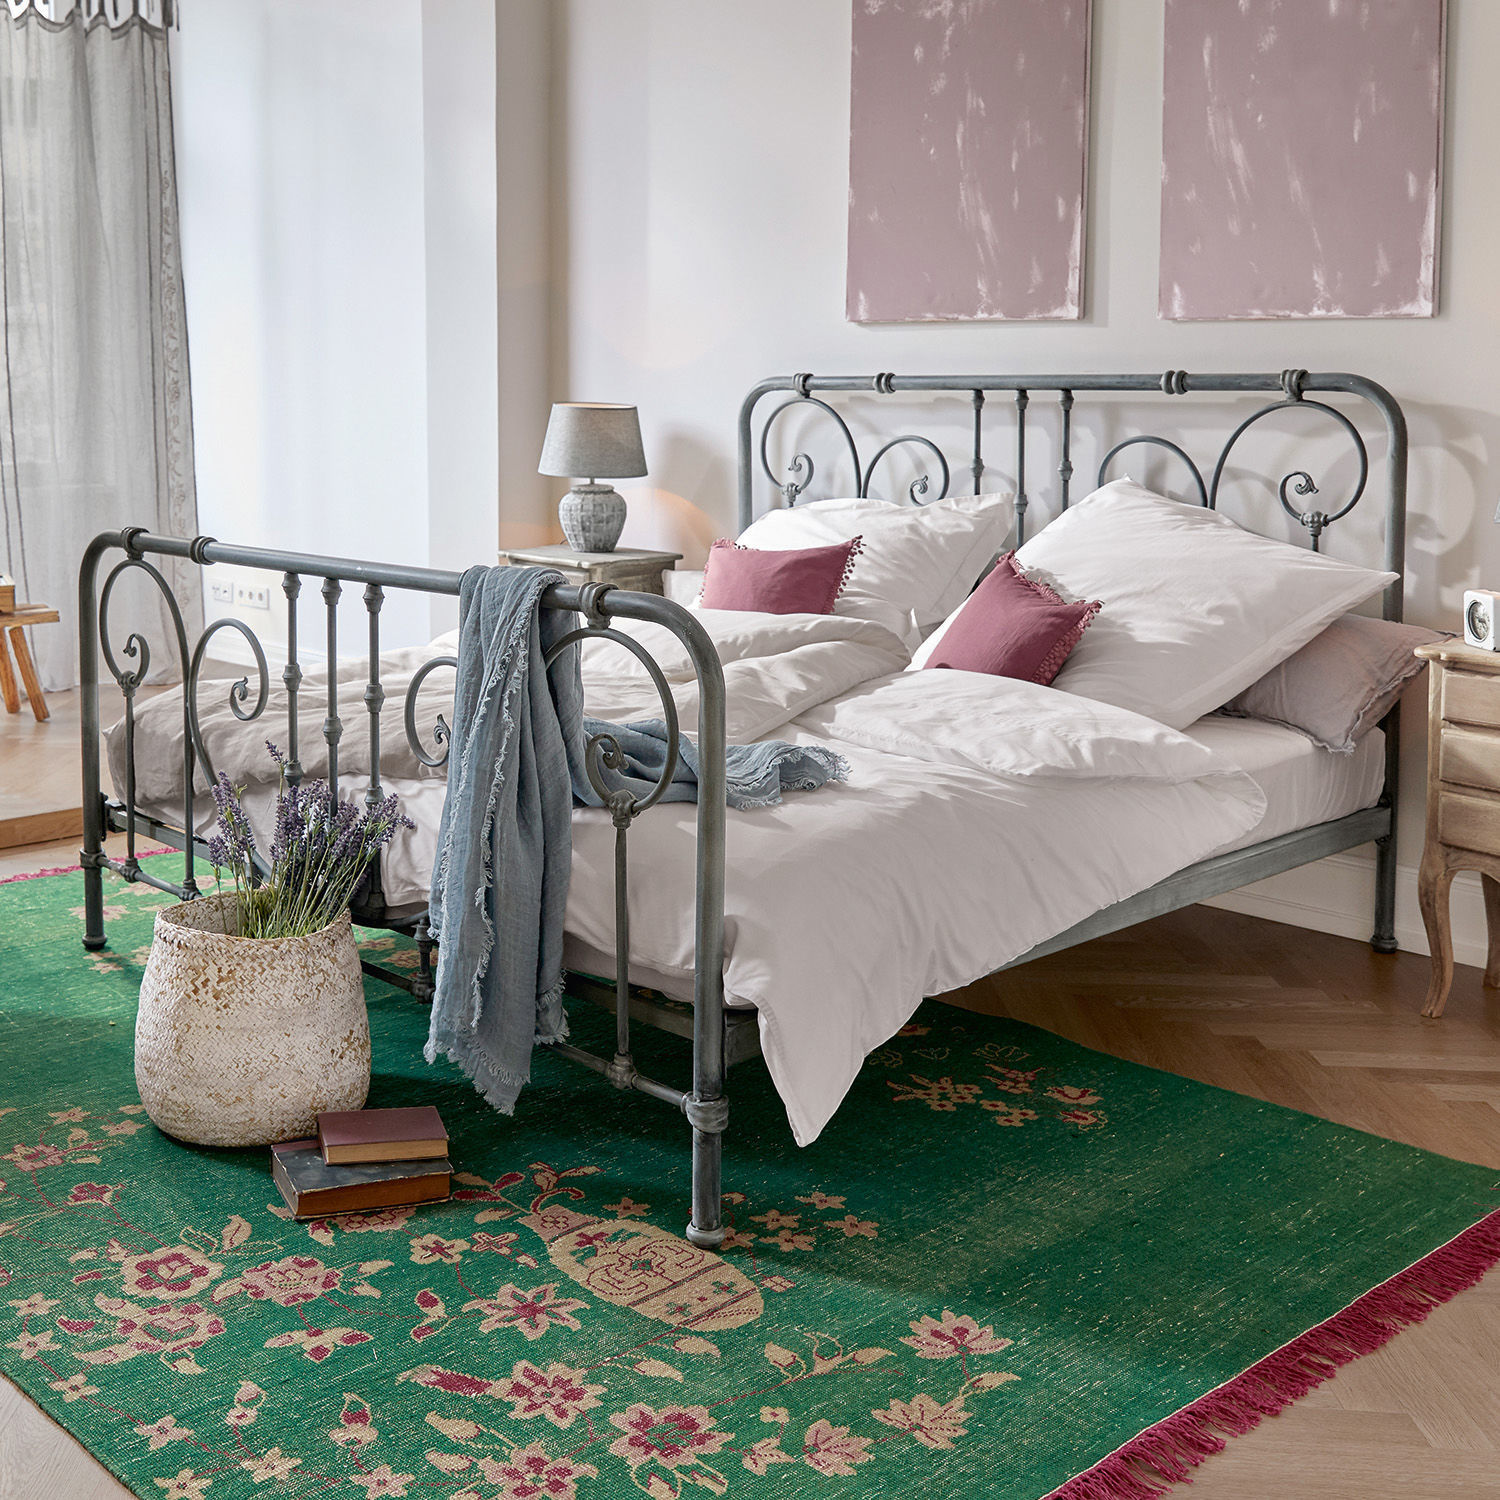 Bed Genouill�